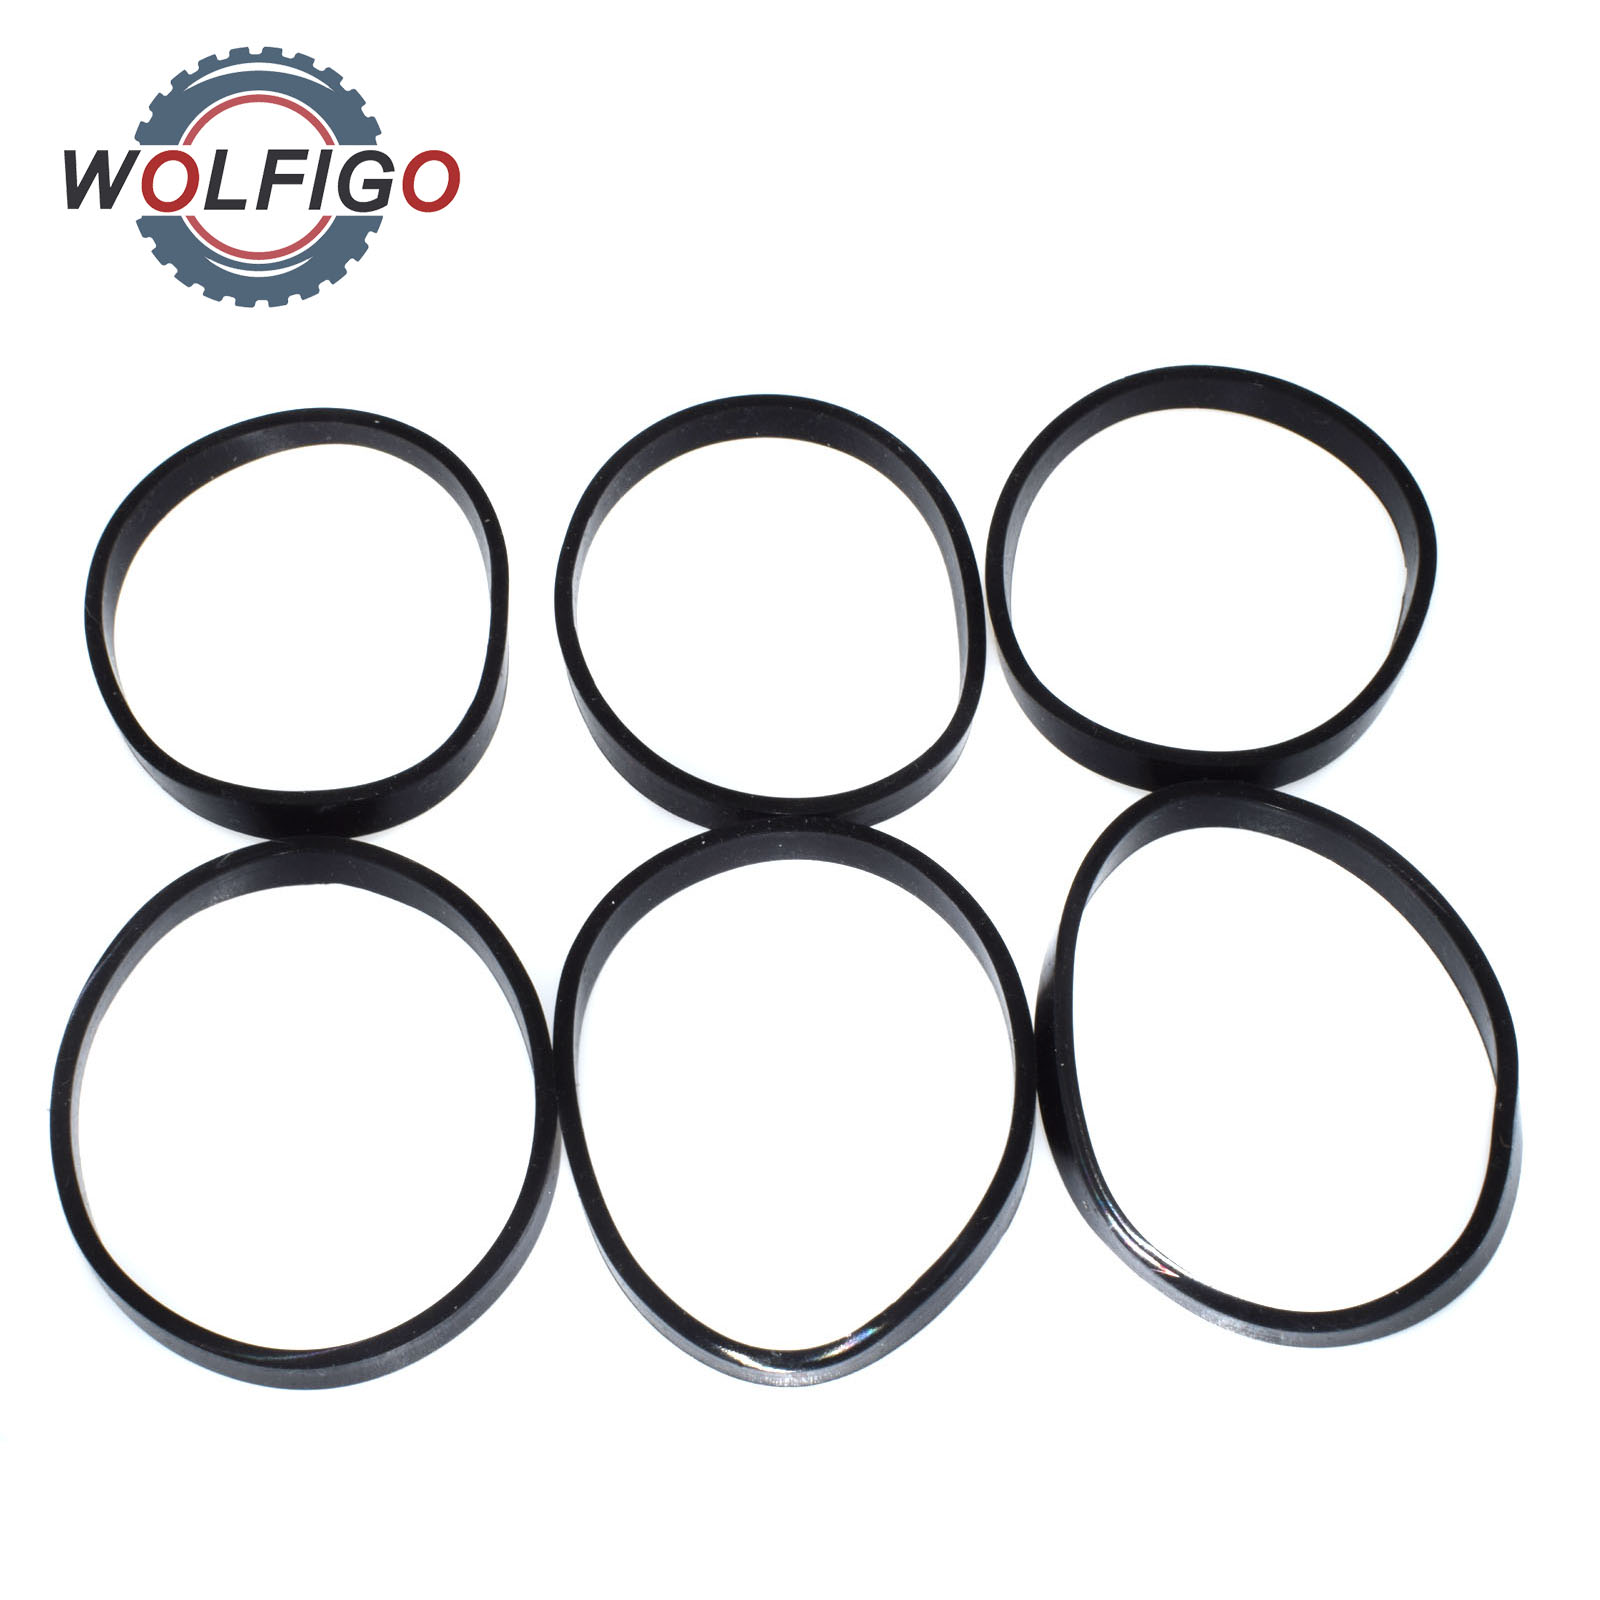 Aliexpress Buy Wolfigo Engine Intake Manifold Gasket